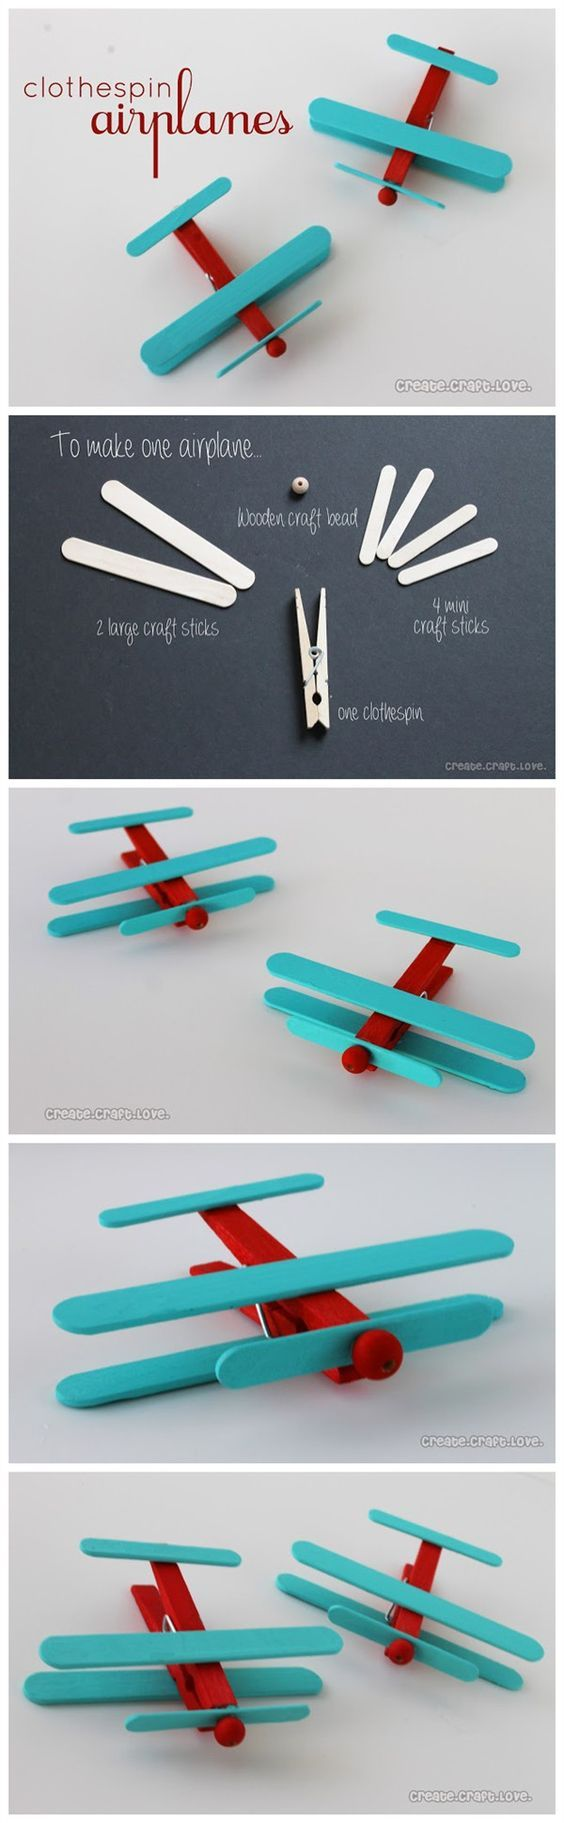 Cute to make with Fender!: